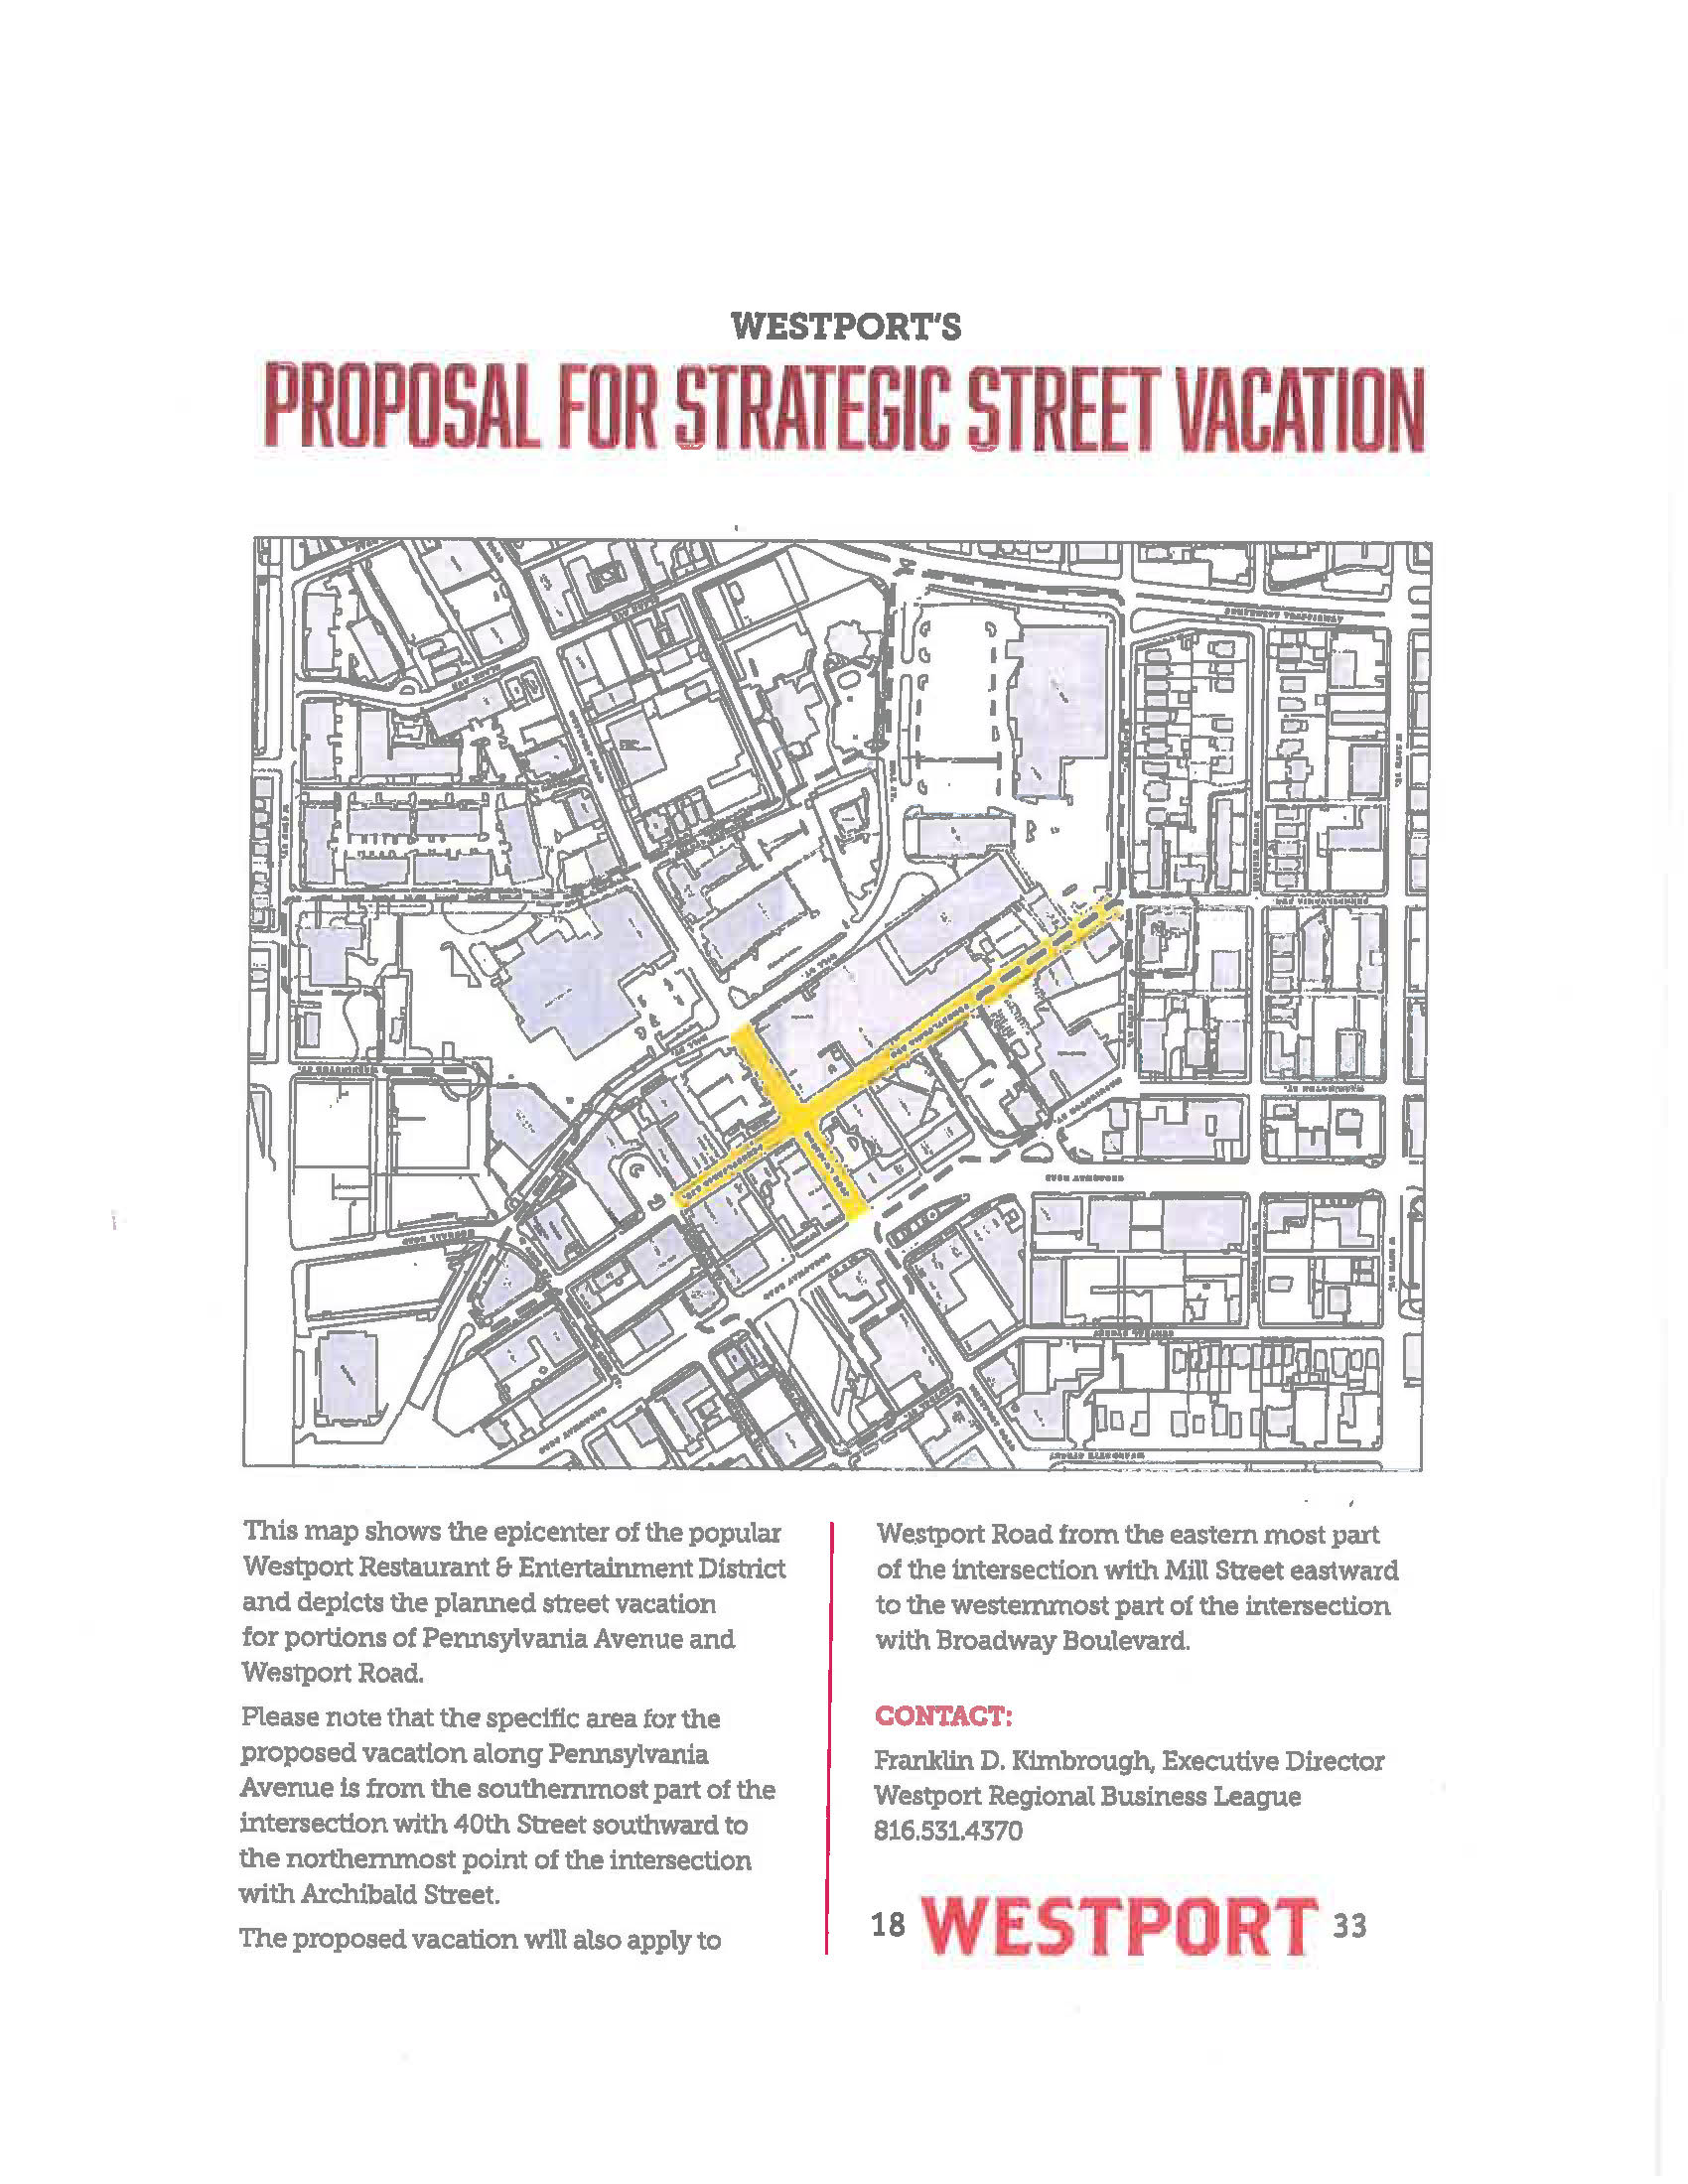 Powering up the neighborhood grid a strategic entry plan for the - The Great Westport Giveaway Turning Public Streets Into Private Property Urban Angle